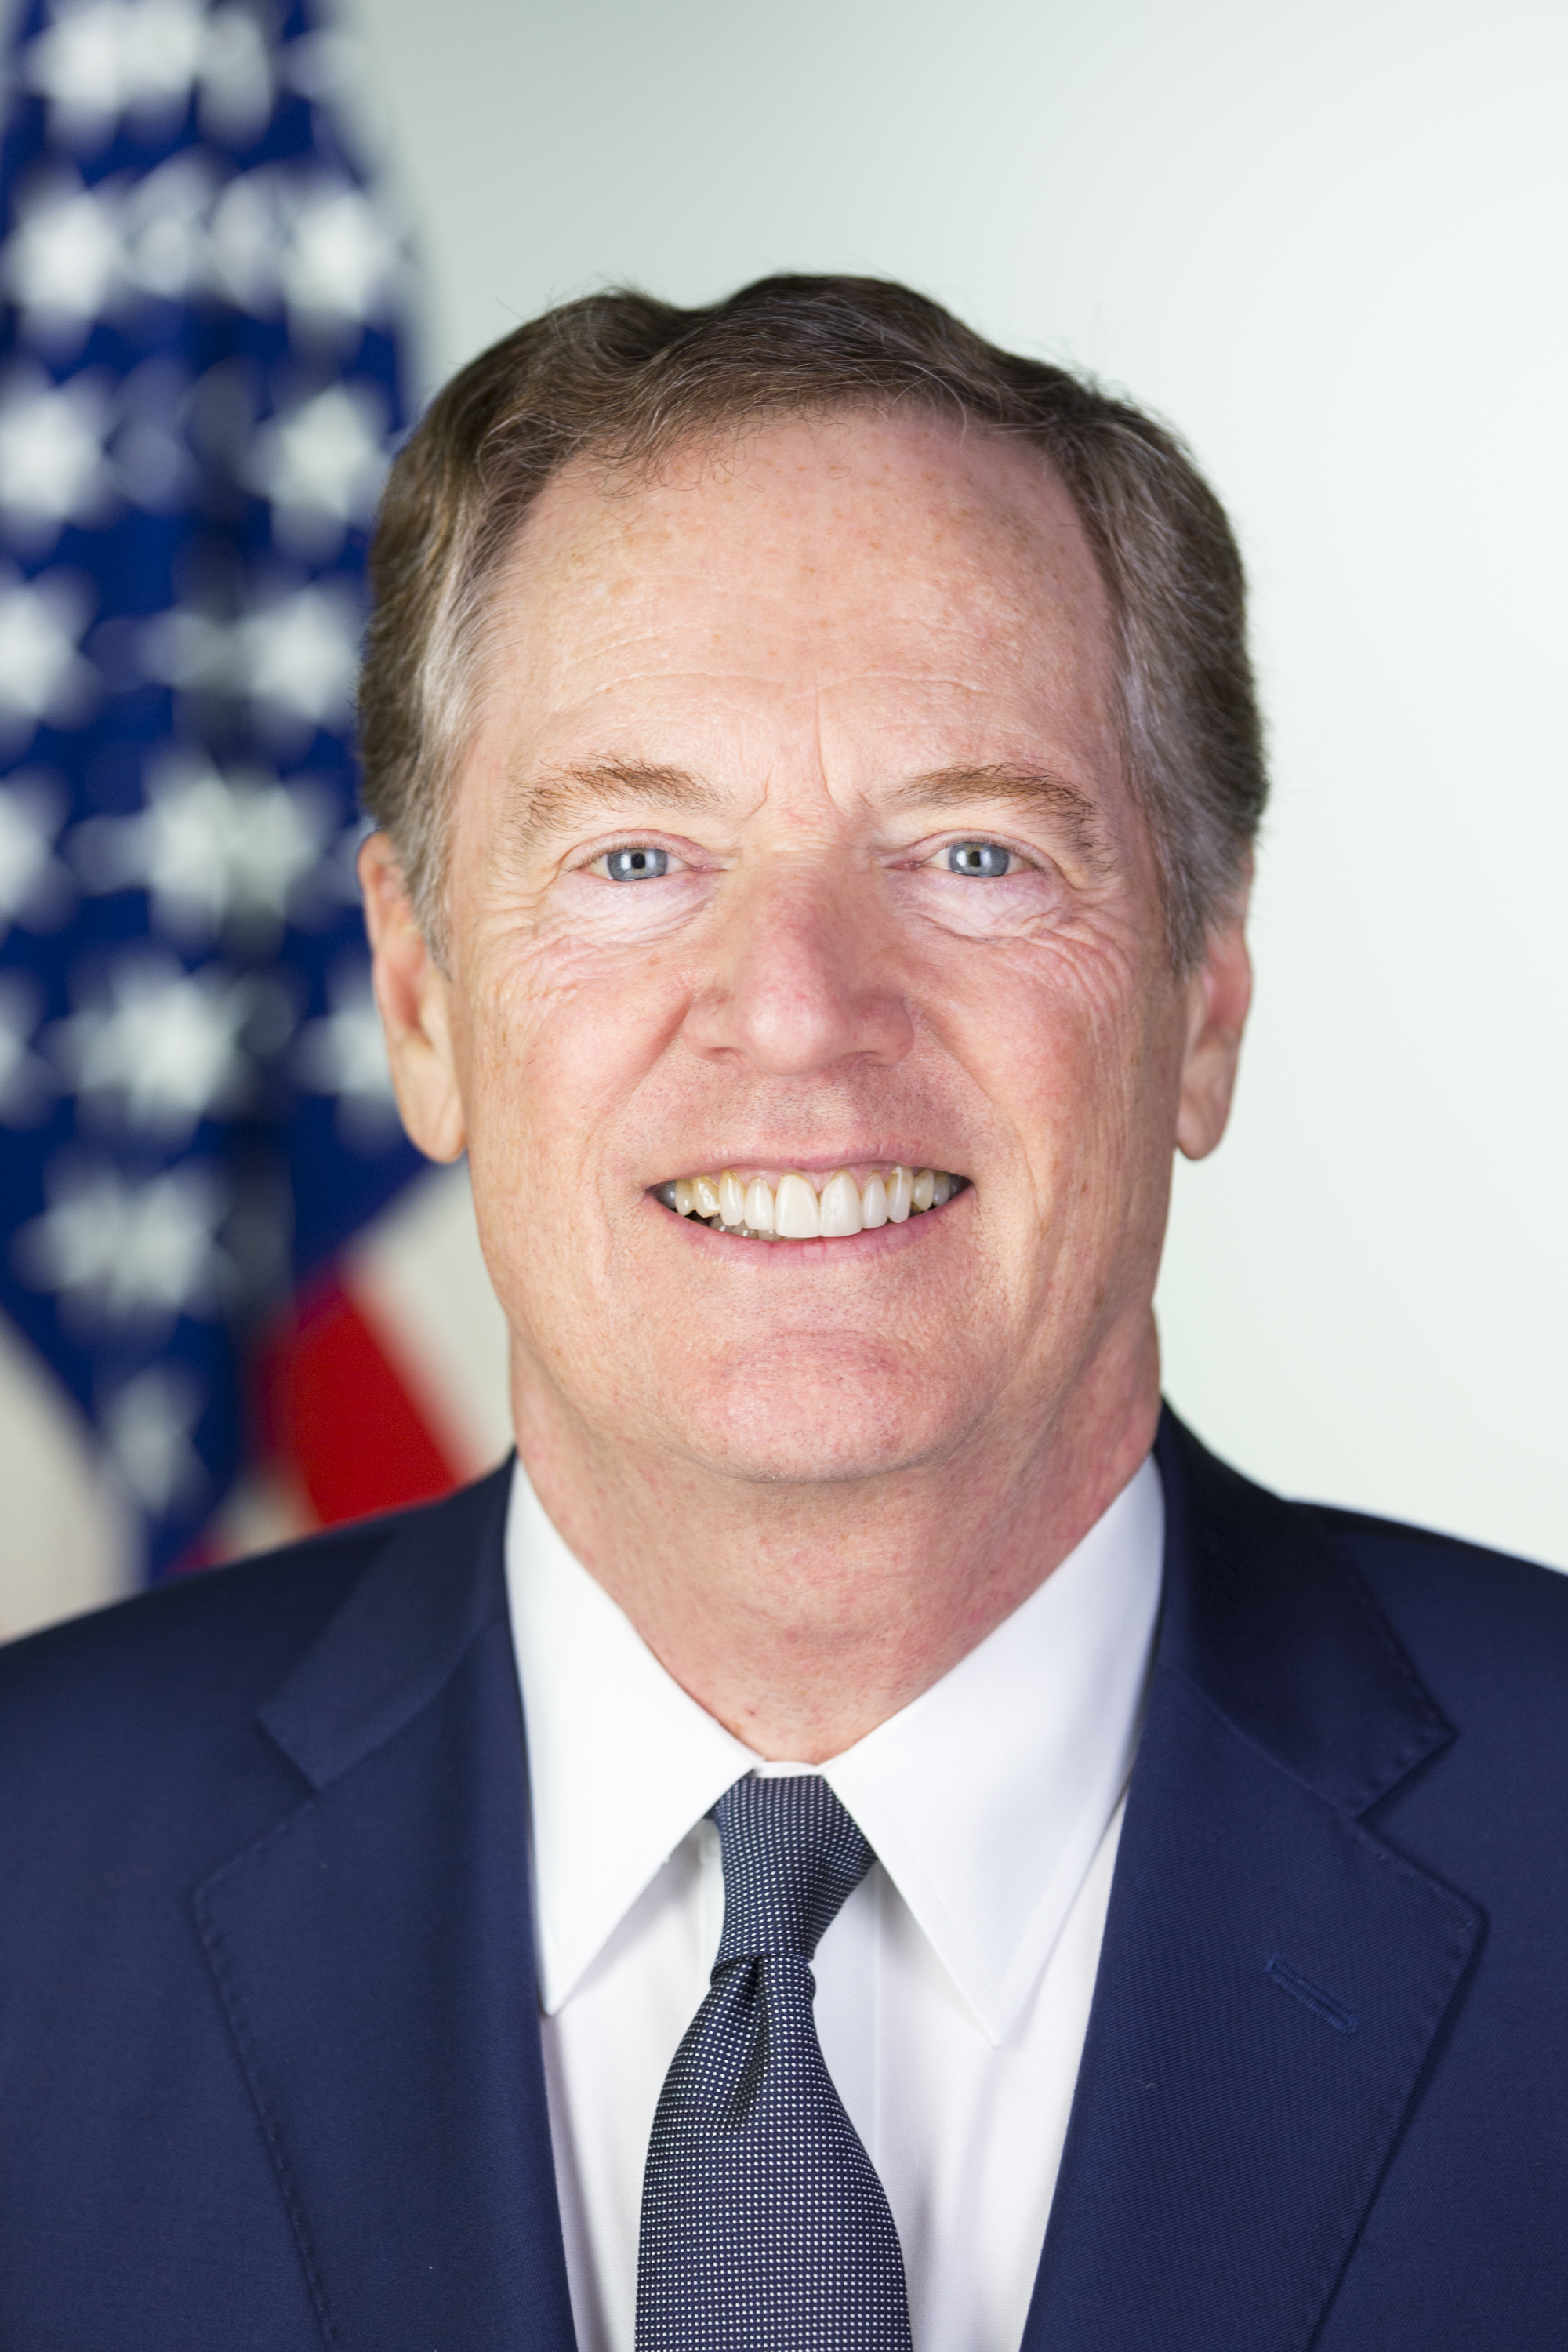 Robert E Lighthizer was sworn in as